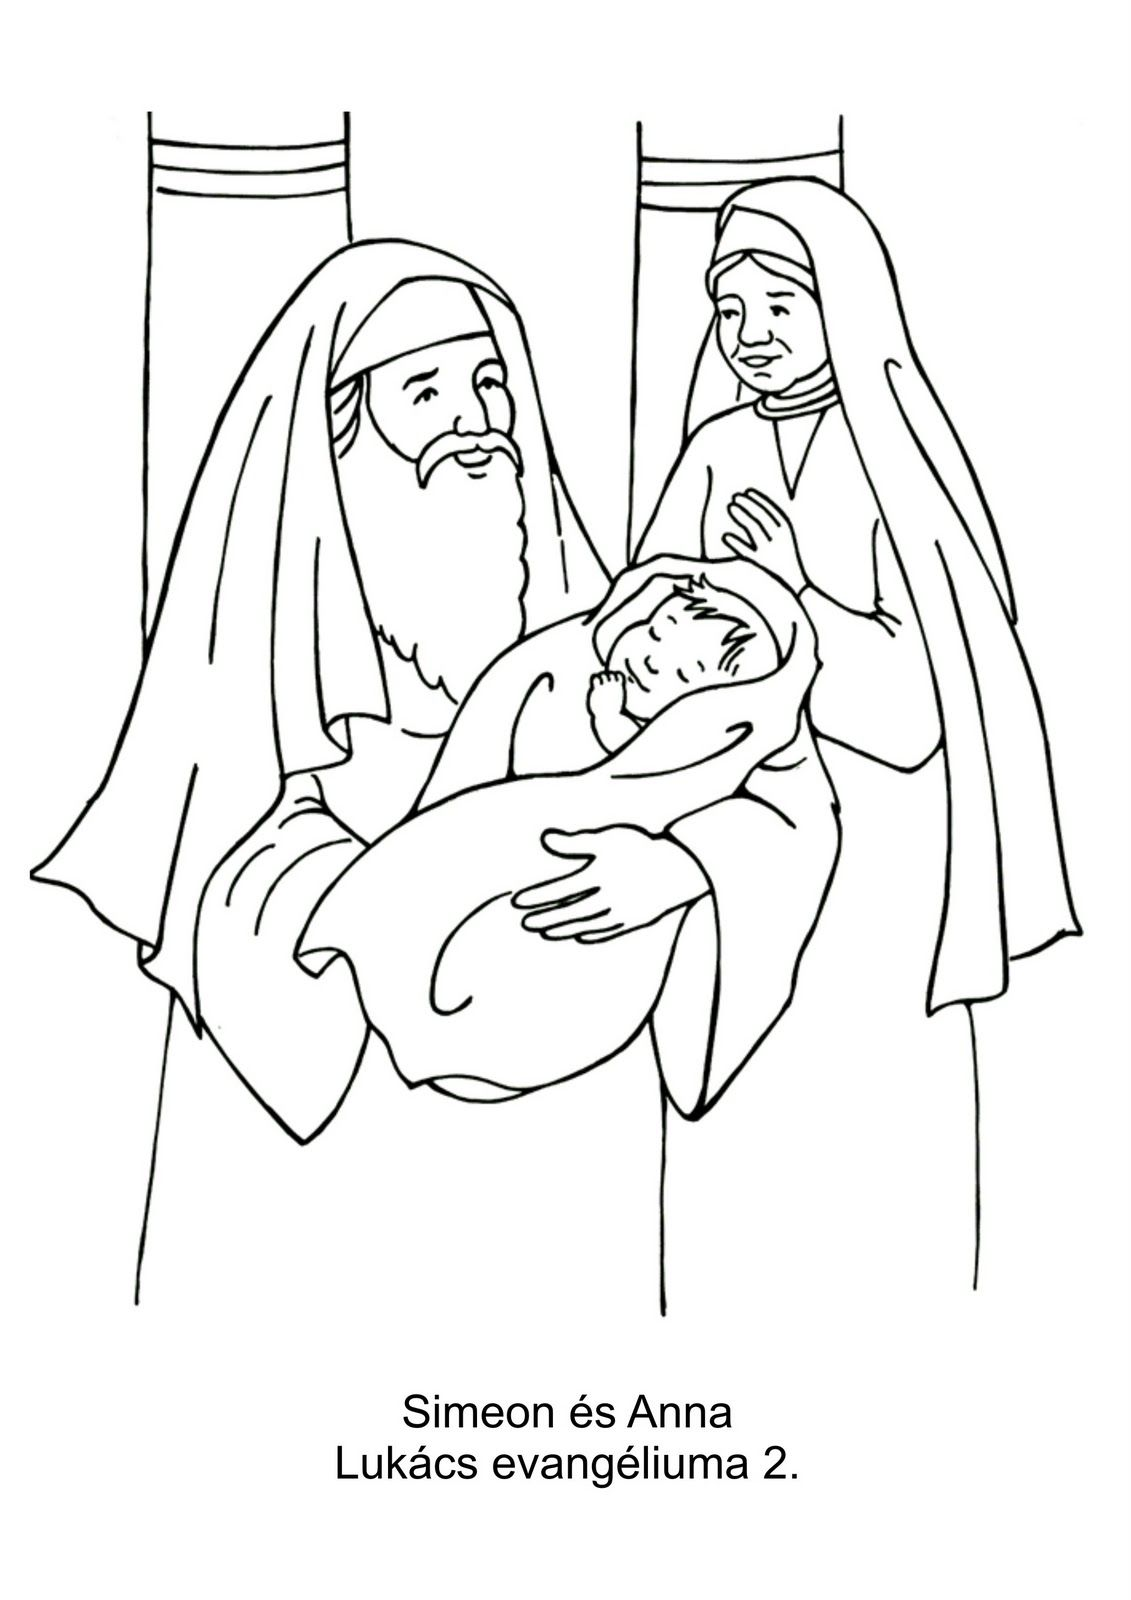 elizabeth bible coloring pages - photo#19